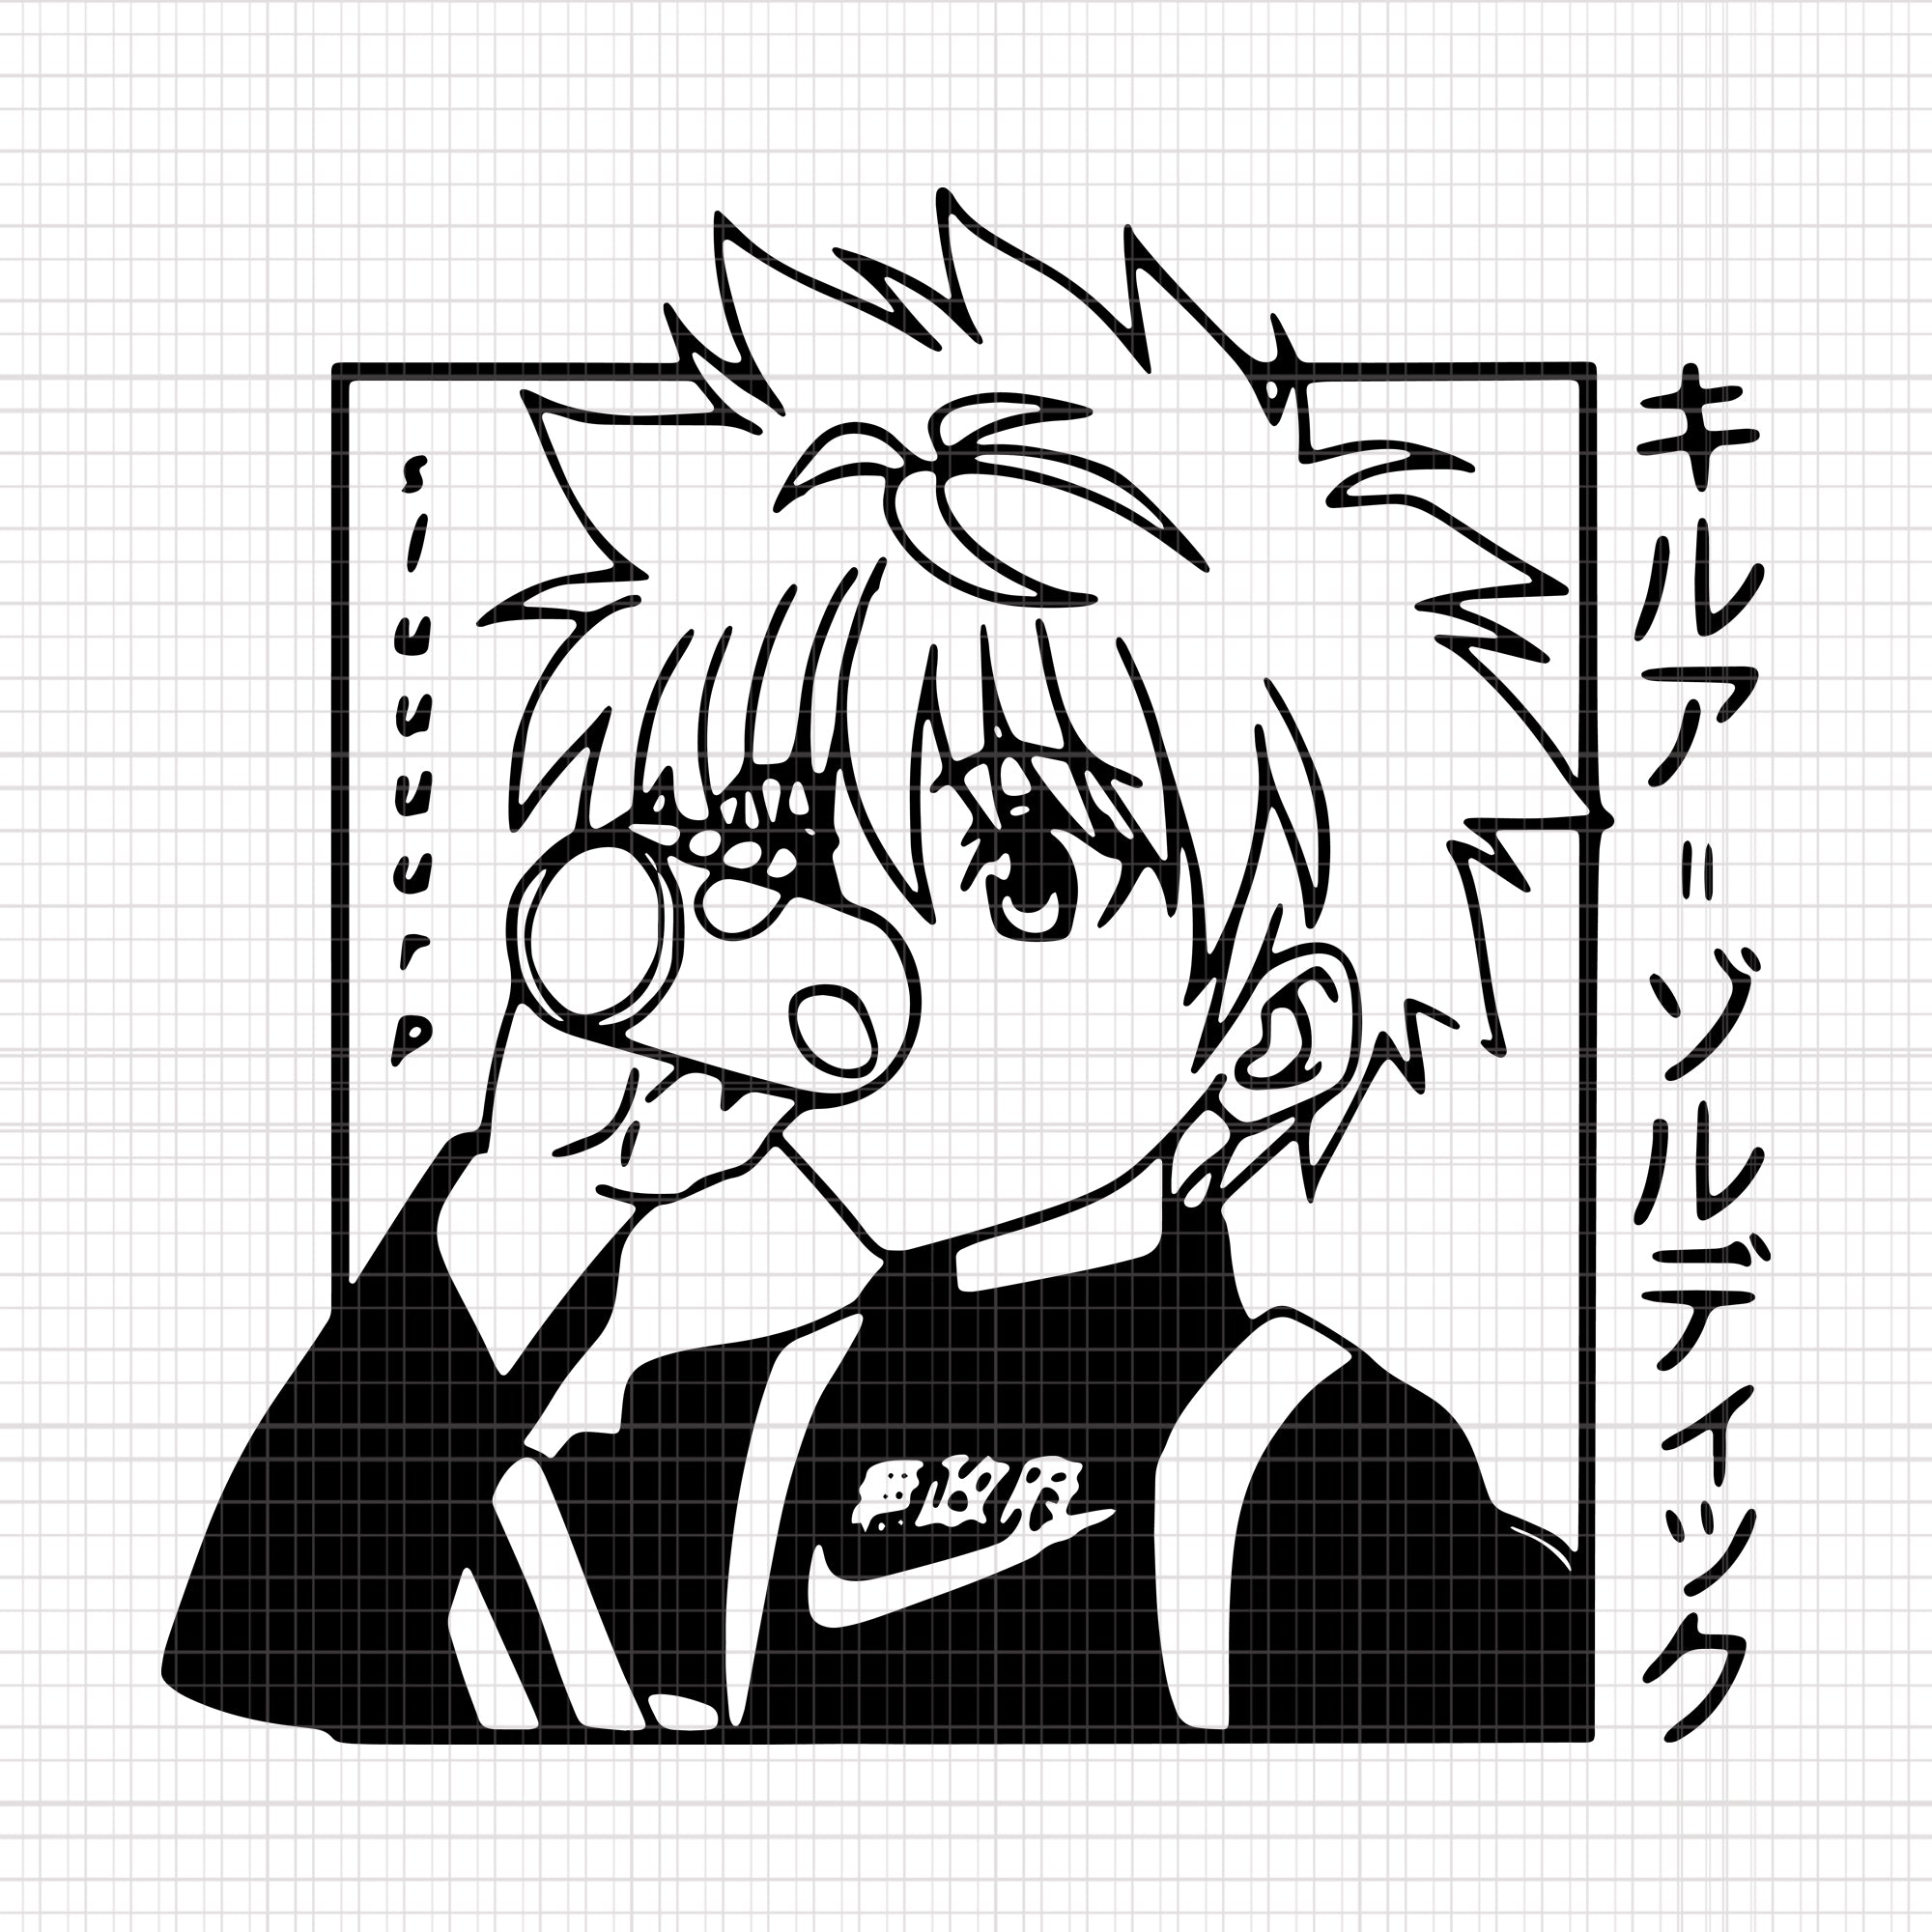 Killuas Gon Teams, Killuas Gon Teams svg, Killuas Gon Teams png, Killuas Gon Teams design,Killuas Gon Teams vector